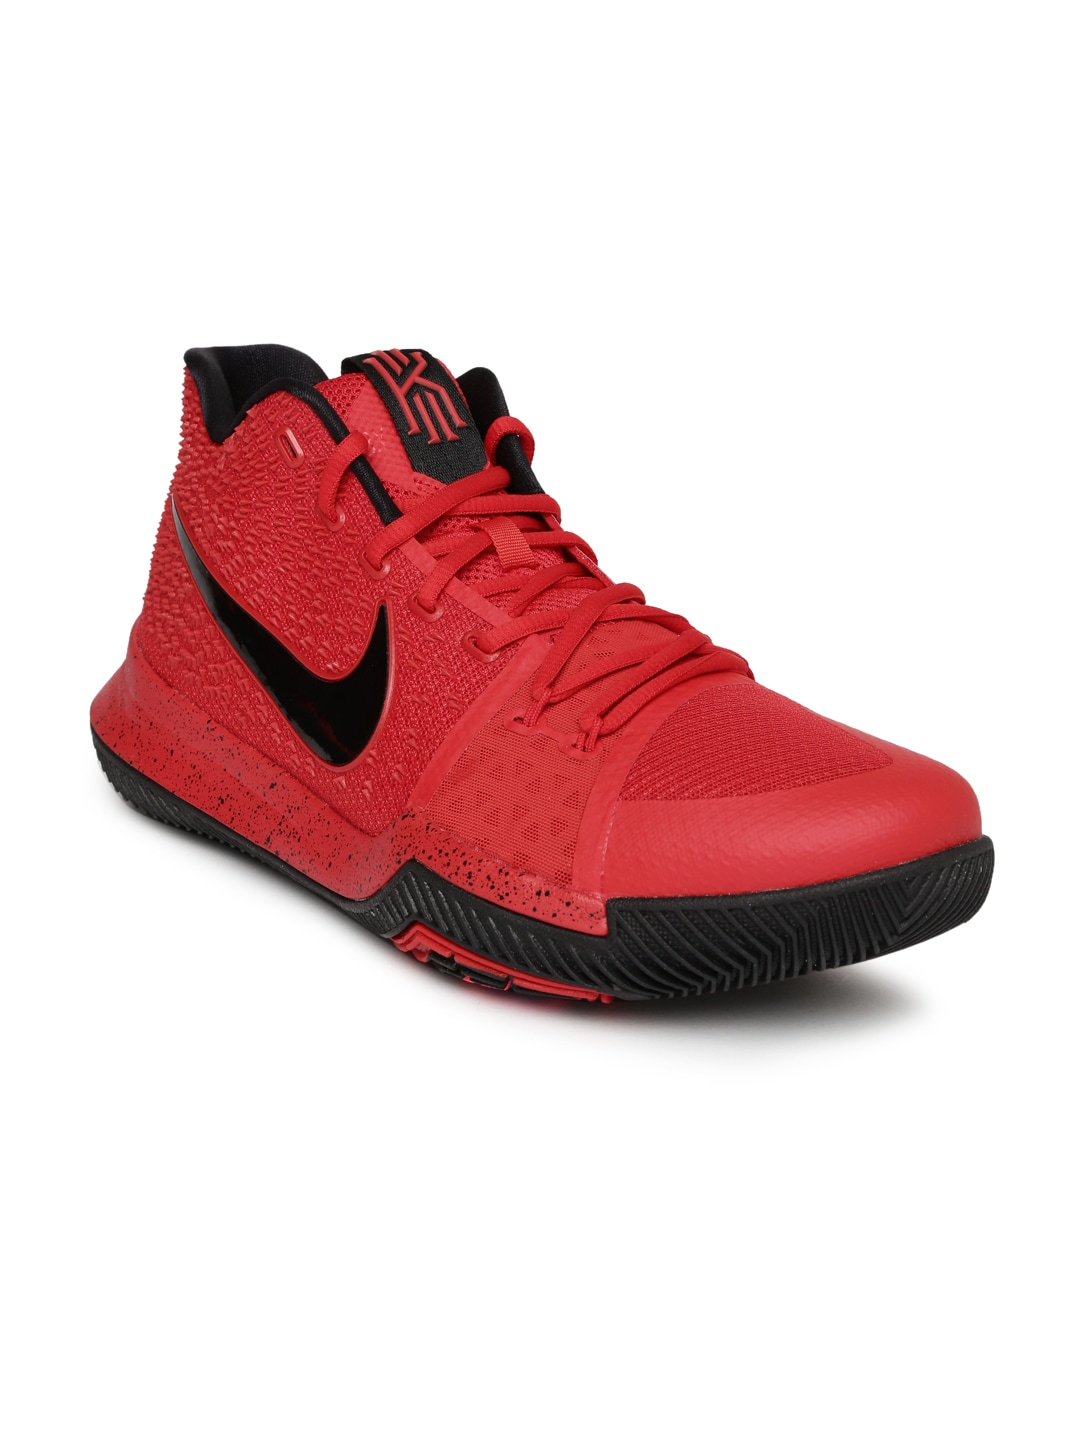 Basketball Shoes Online Store India